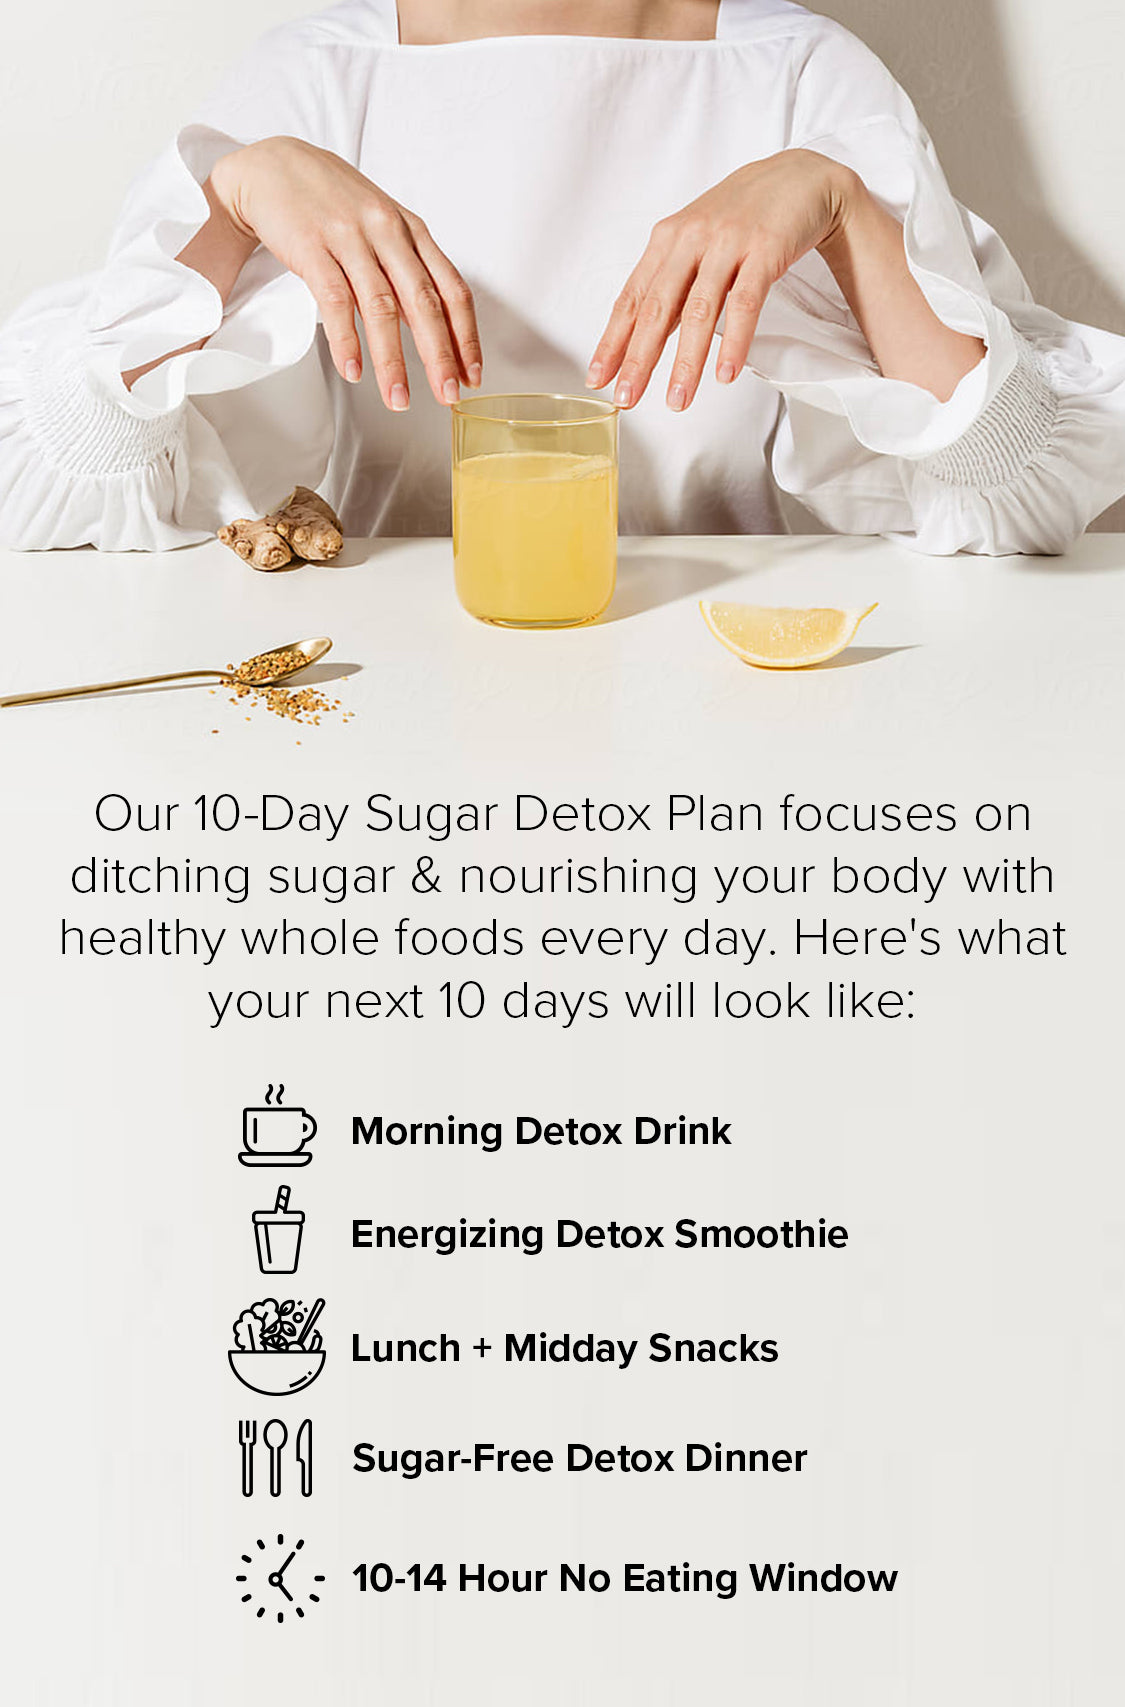 A Day on the 10-Day SUGAR DETOX PLAN